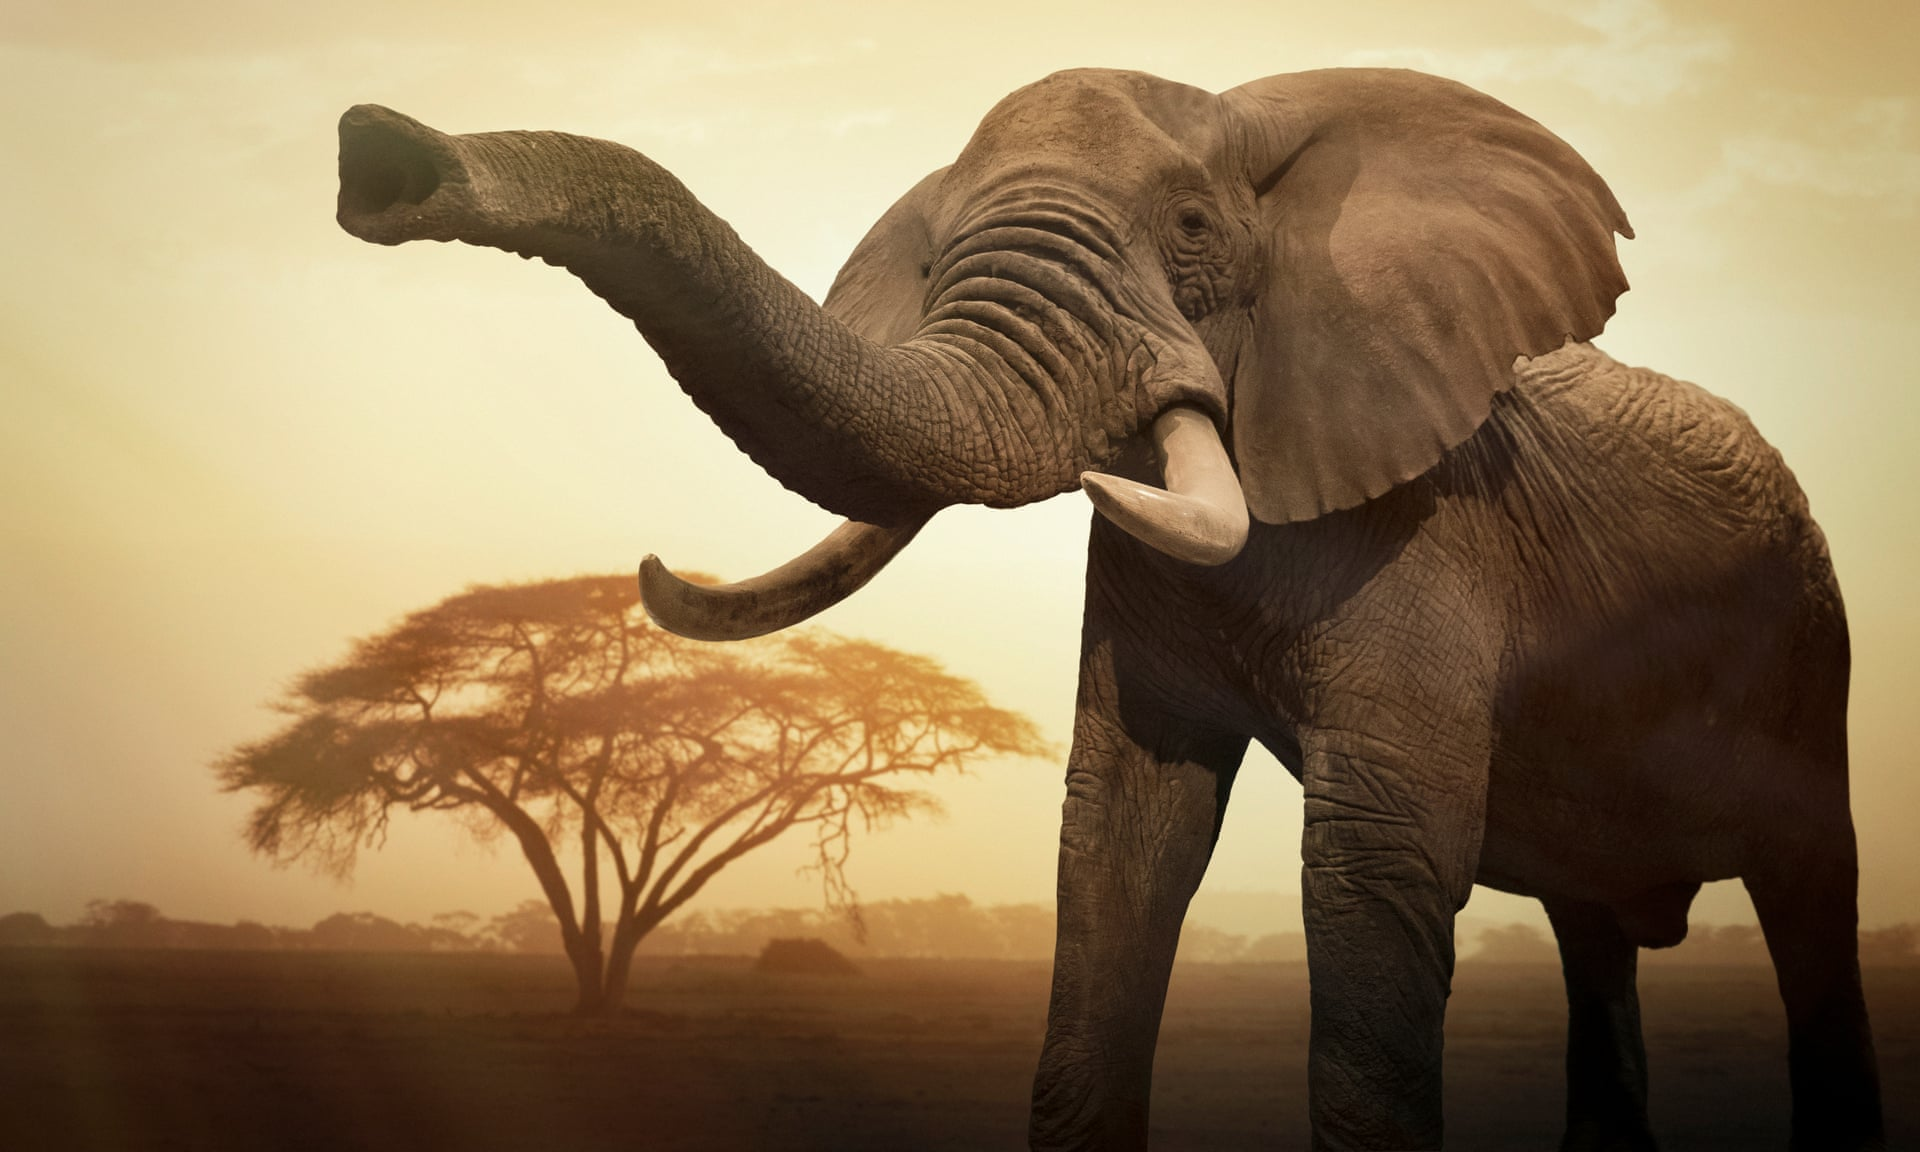 A giant female African elephant (Loxodonta africana) at sunset showing trunk as an aggressive signal. Photograph: Buena Vista Images/Getty Images